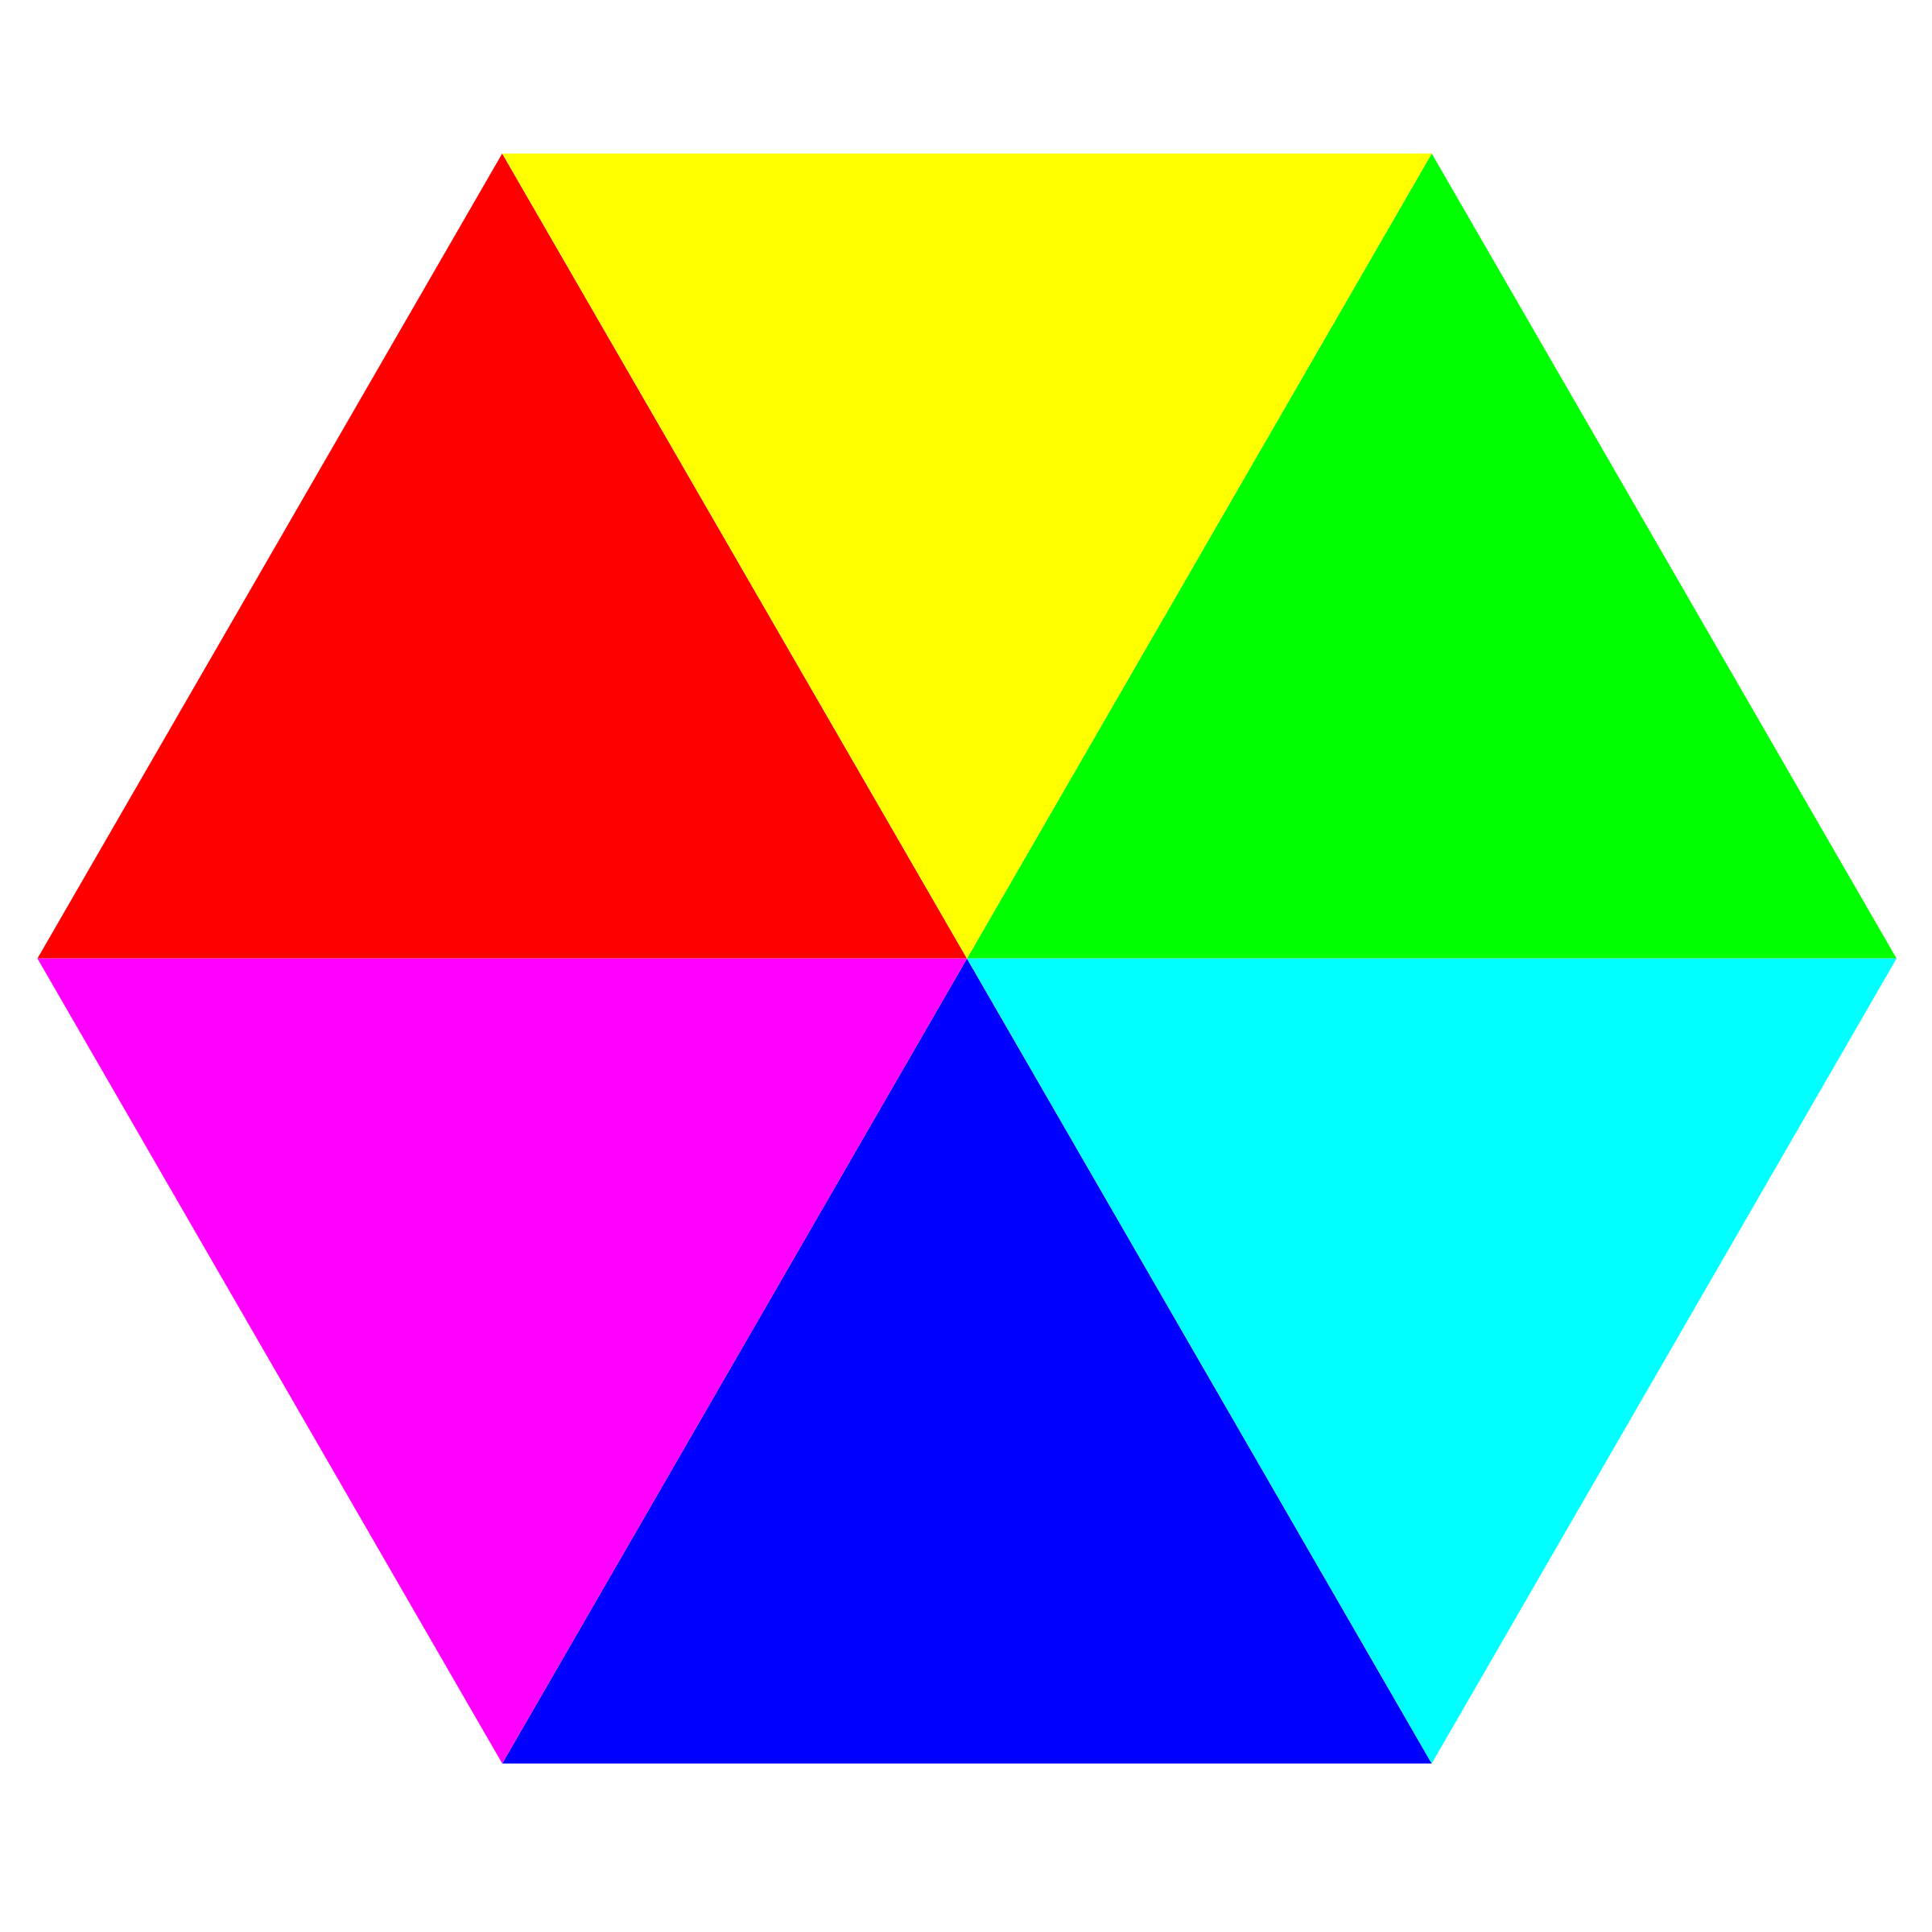 hexagon 6 color by 10binary